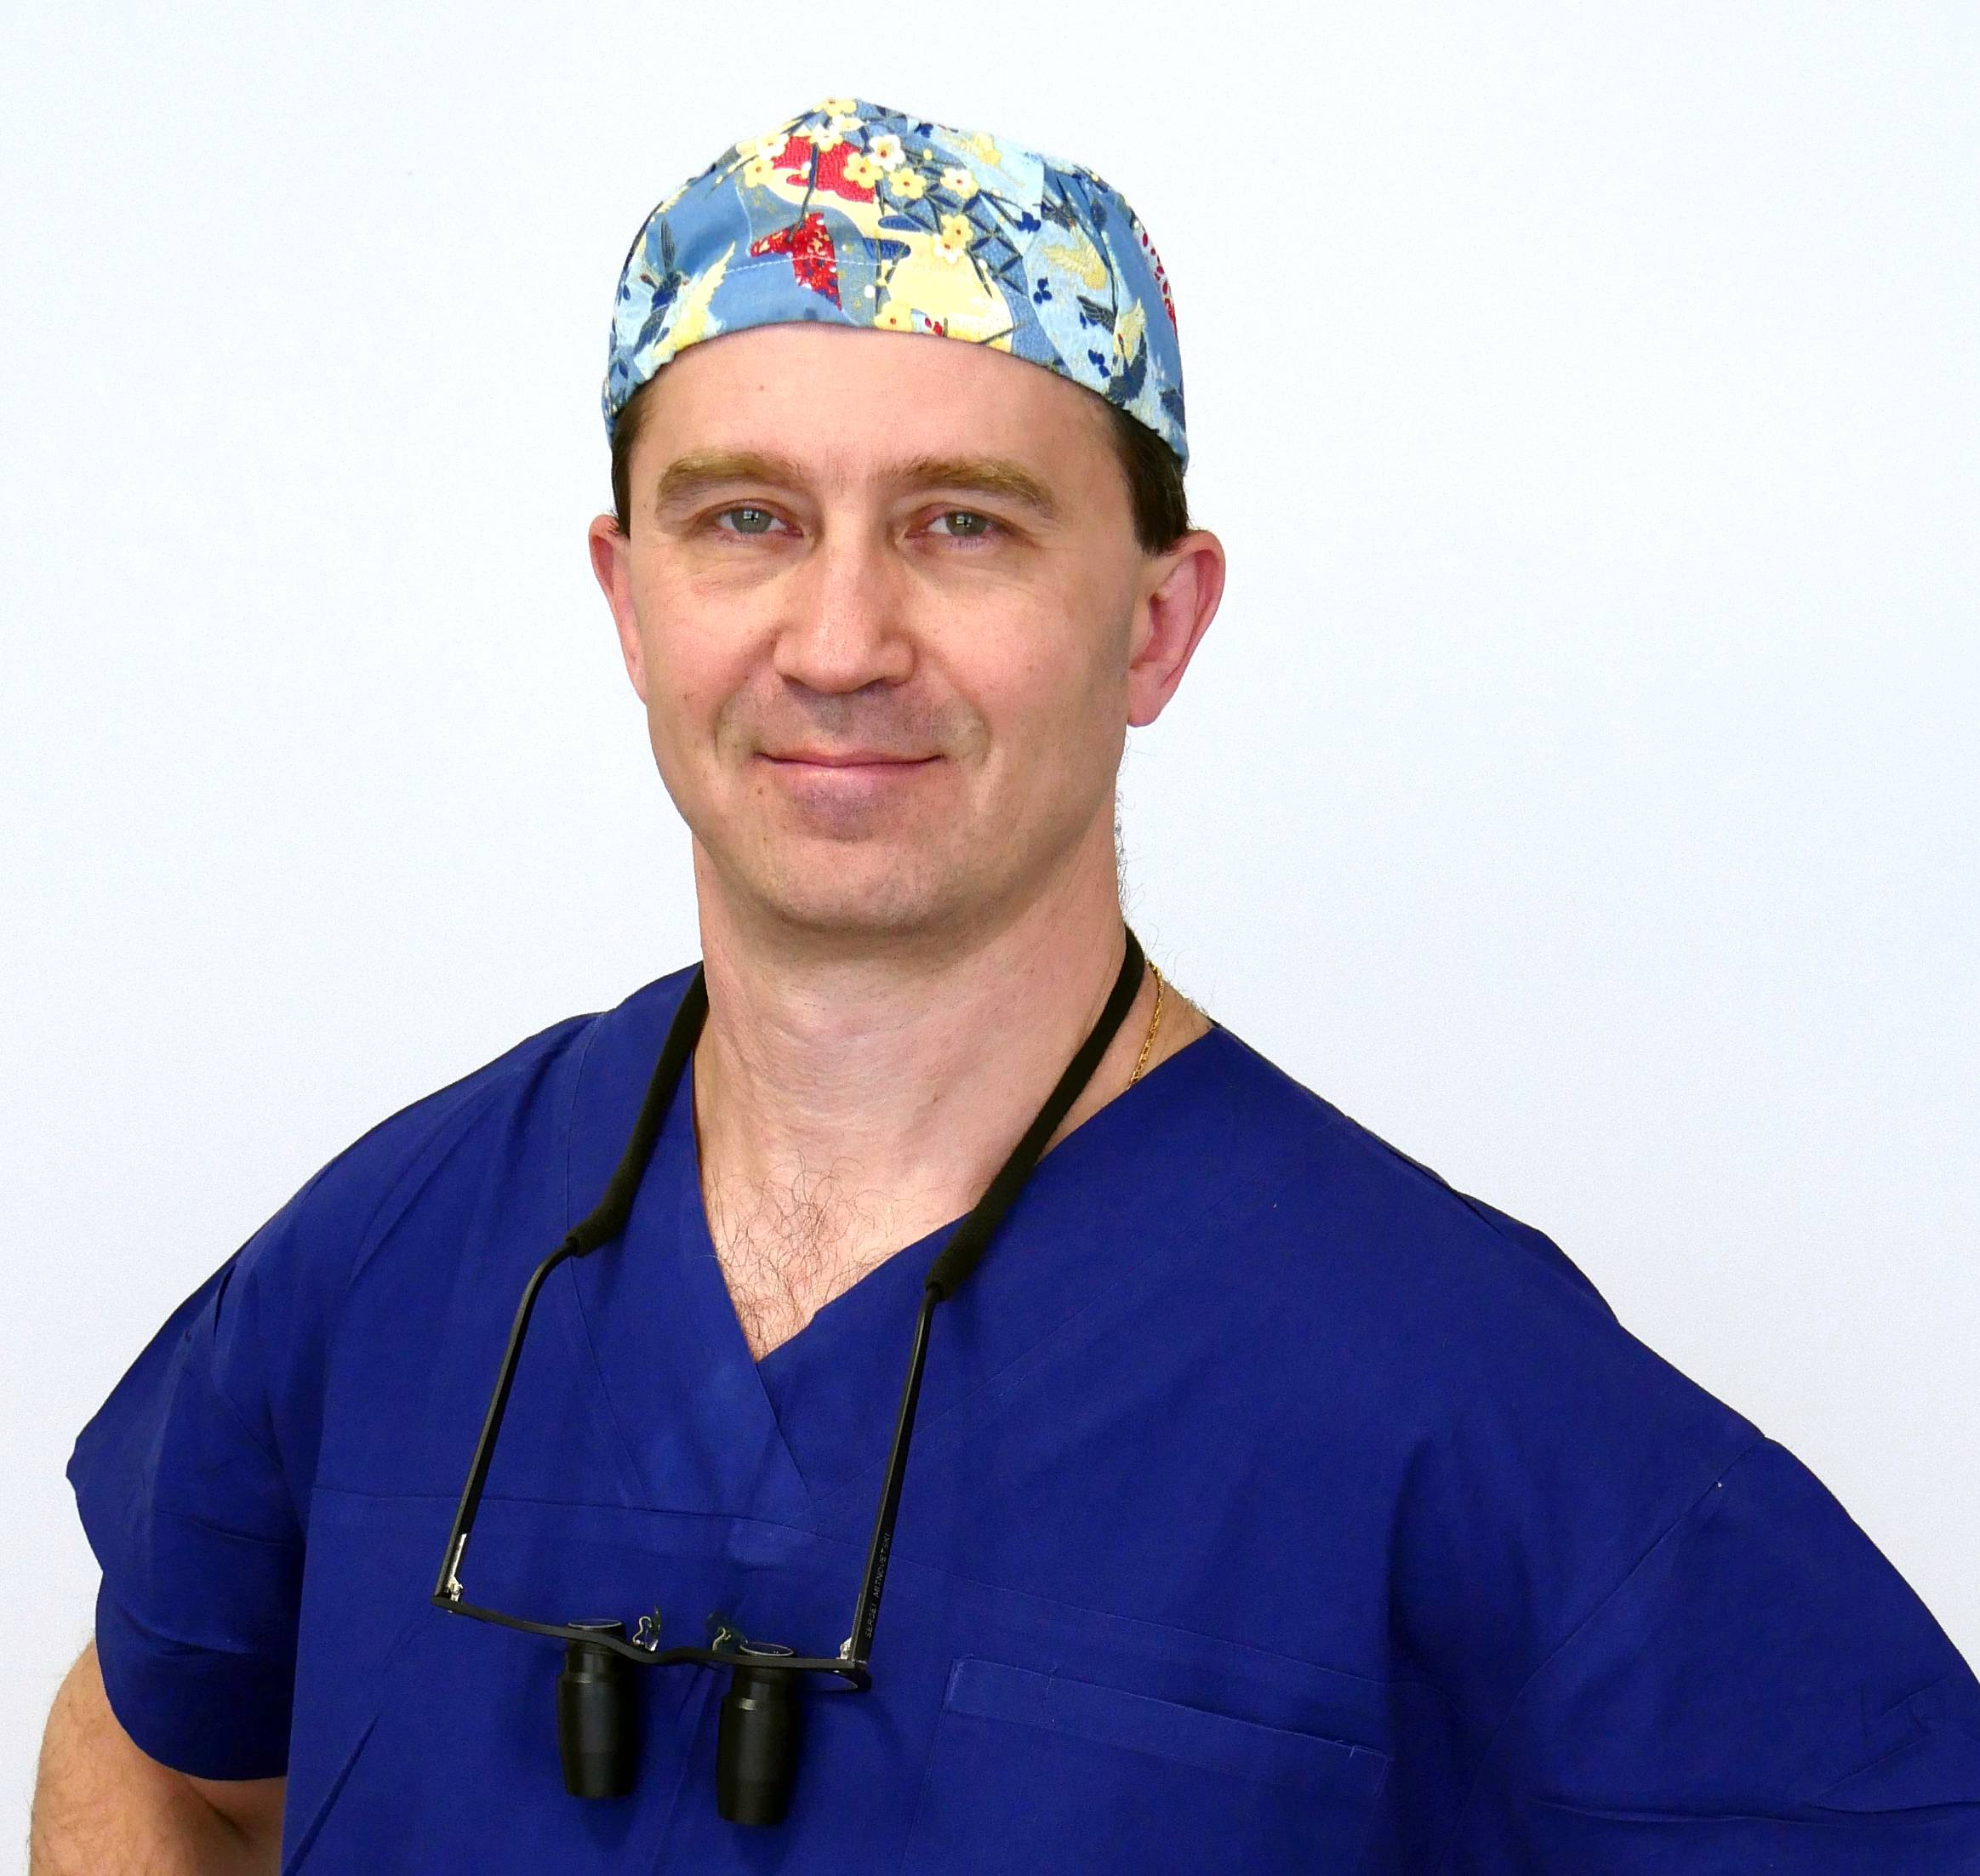 cardio thoracic surgeon melbourne